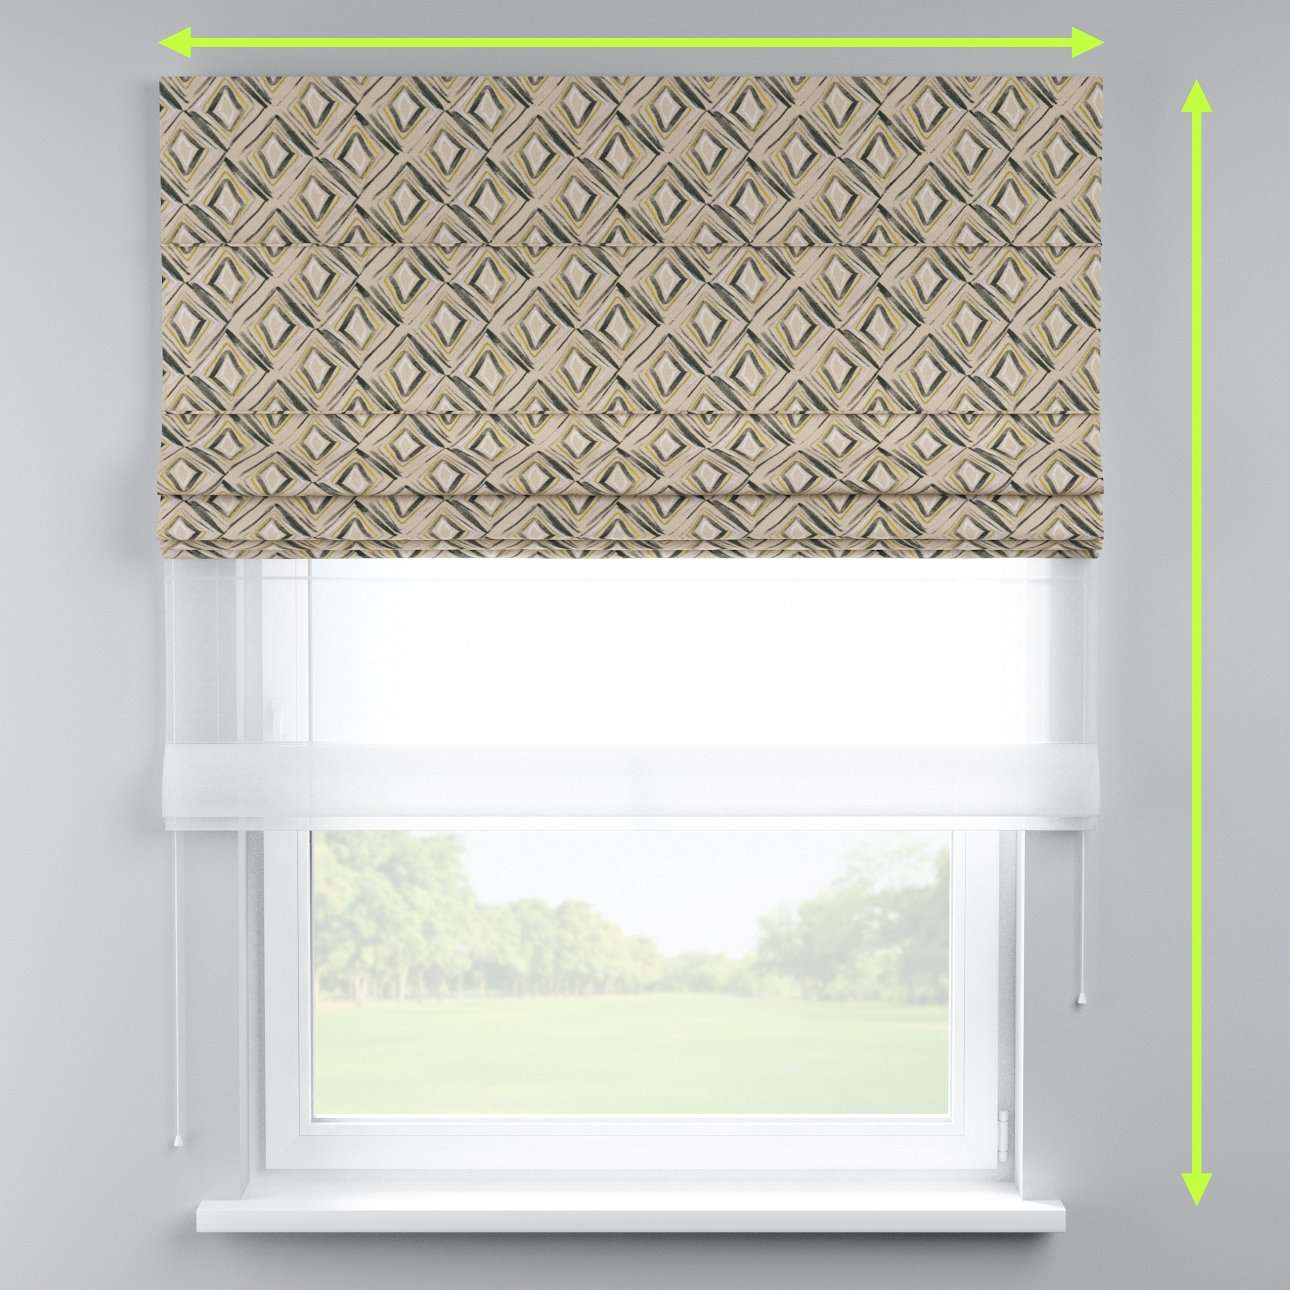 Voile and fabric roman blind (DUO II) in collection Londres, fabric: 140-46